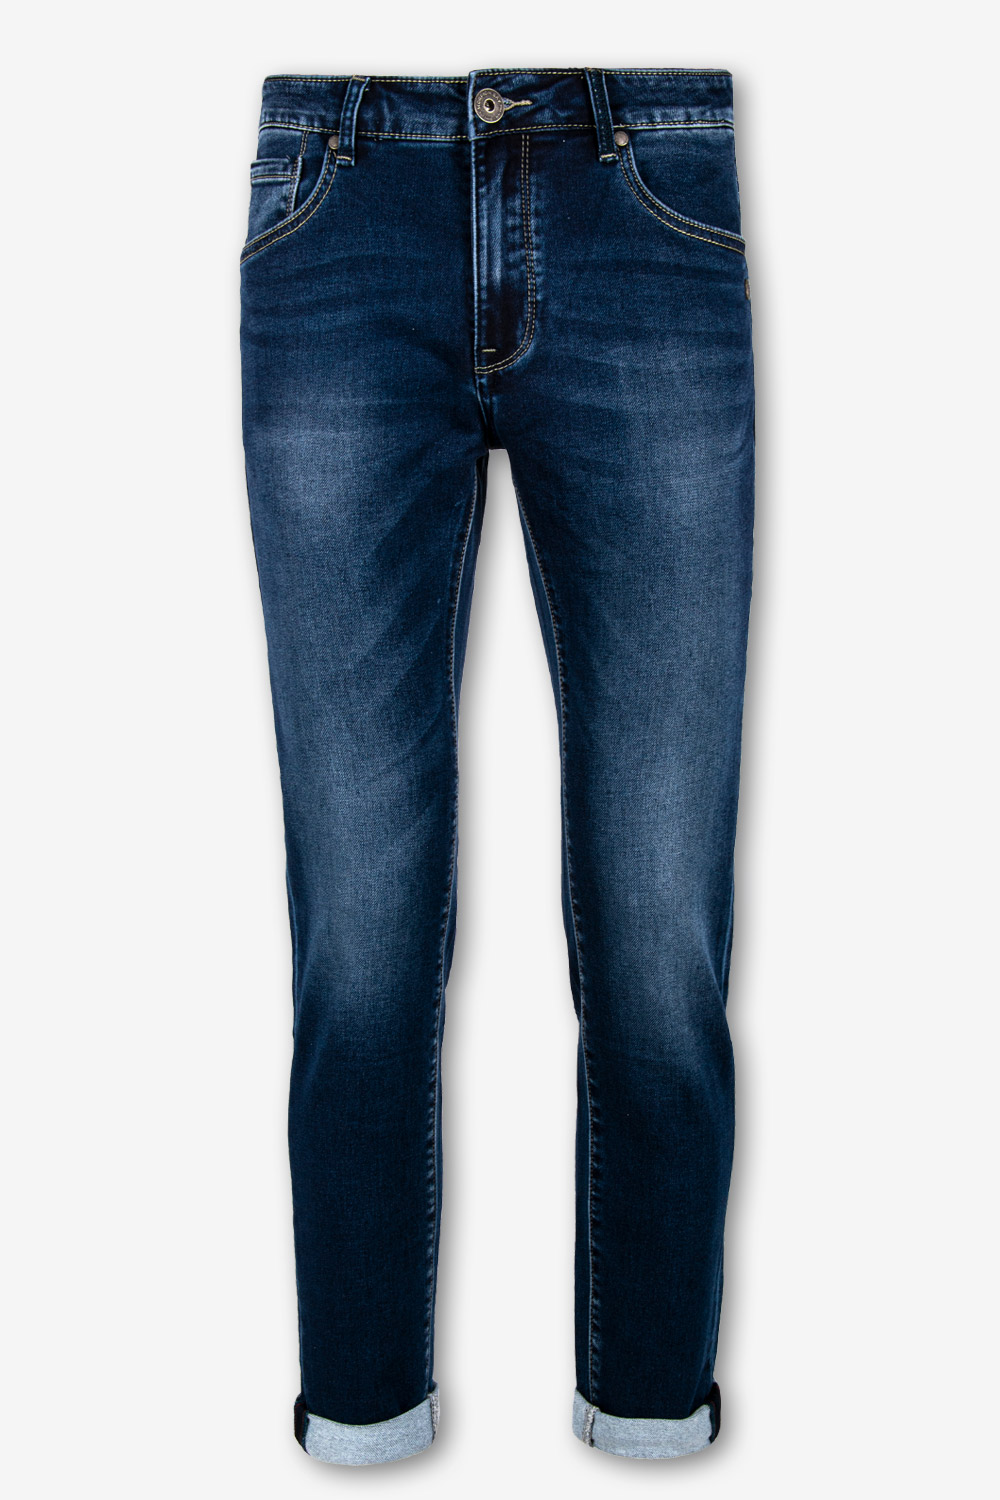 Pantalone Uomo Denim WRIGHT